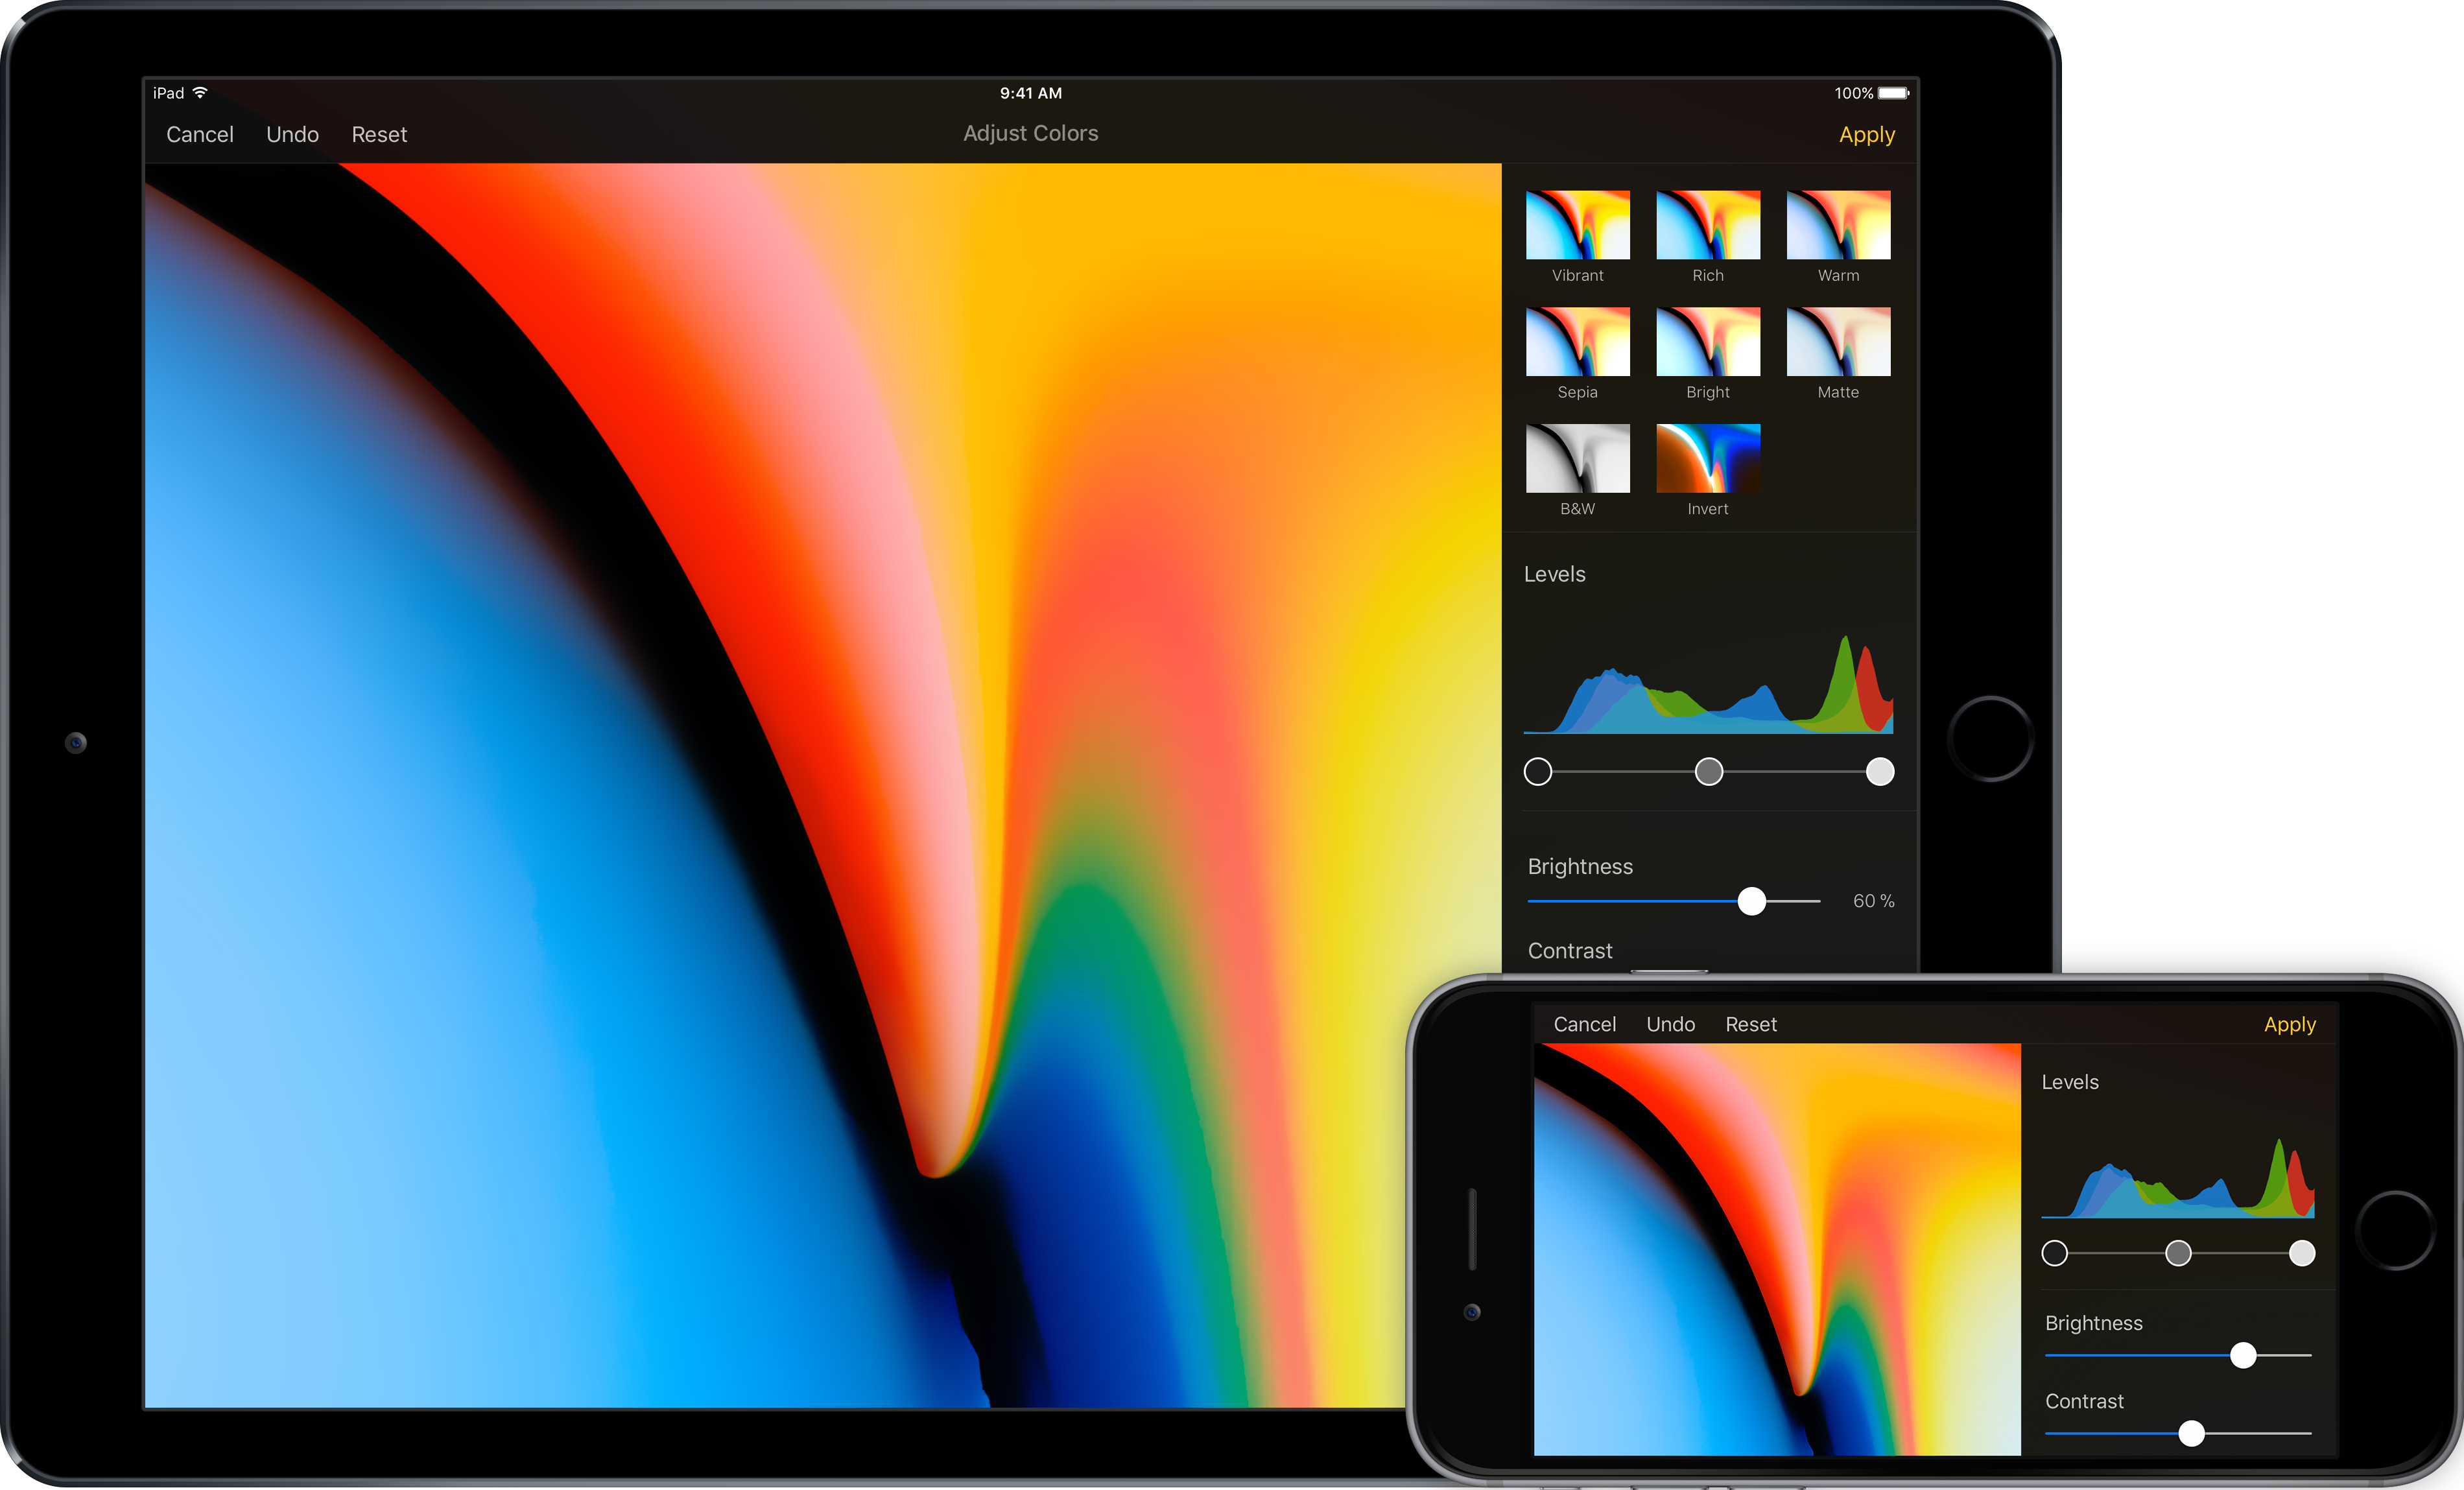 Pixelmator for iOS 2.4 Cobalt adds support for iOS 11 Image